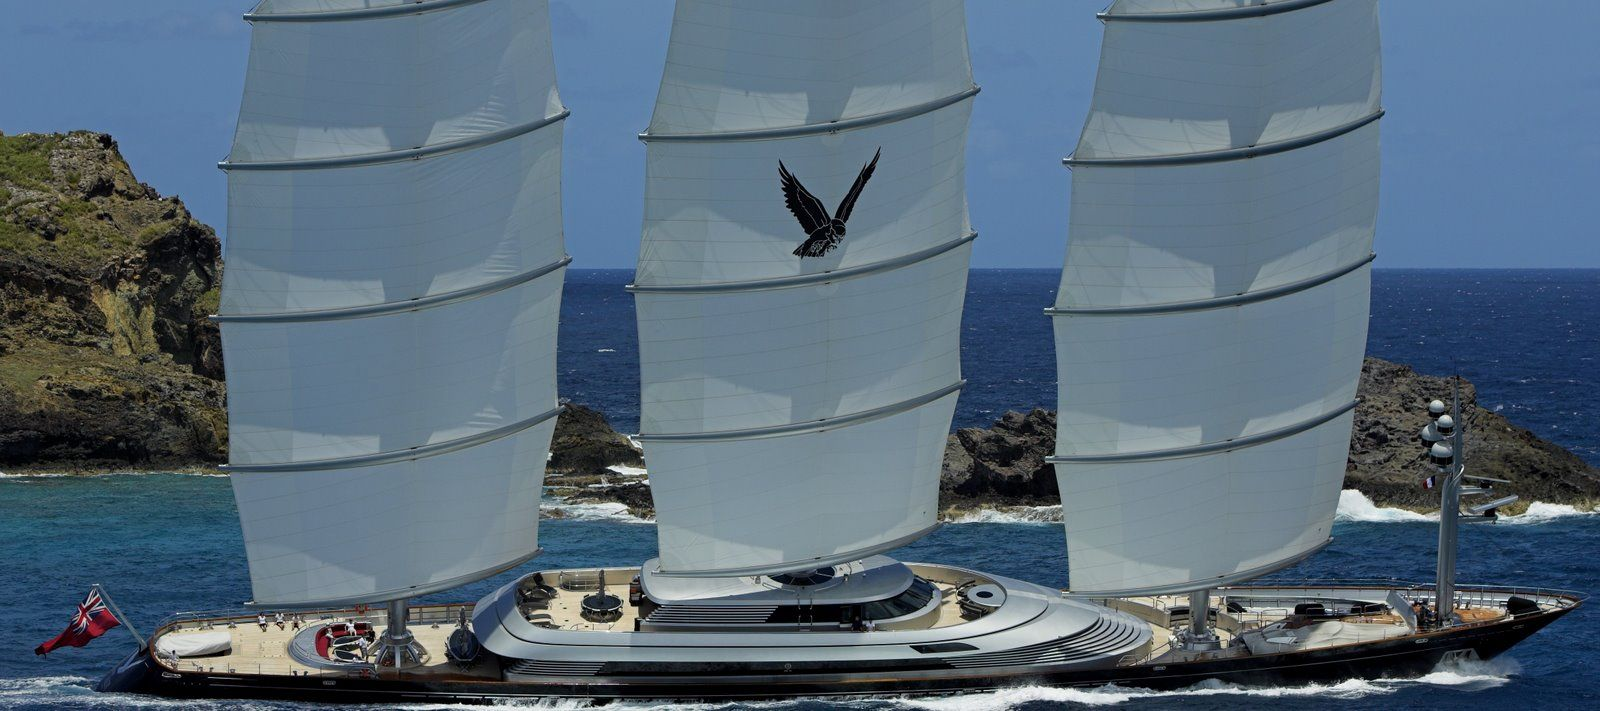 Maltese Falcon By Perini Navi 289 Feet One Of The Largest And The Most Expensive Sailing Yacht In The World Cost Usd 160 Mi Bateaux De Luxe Voilier Bateaux